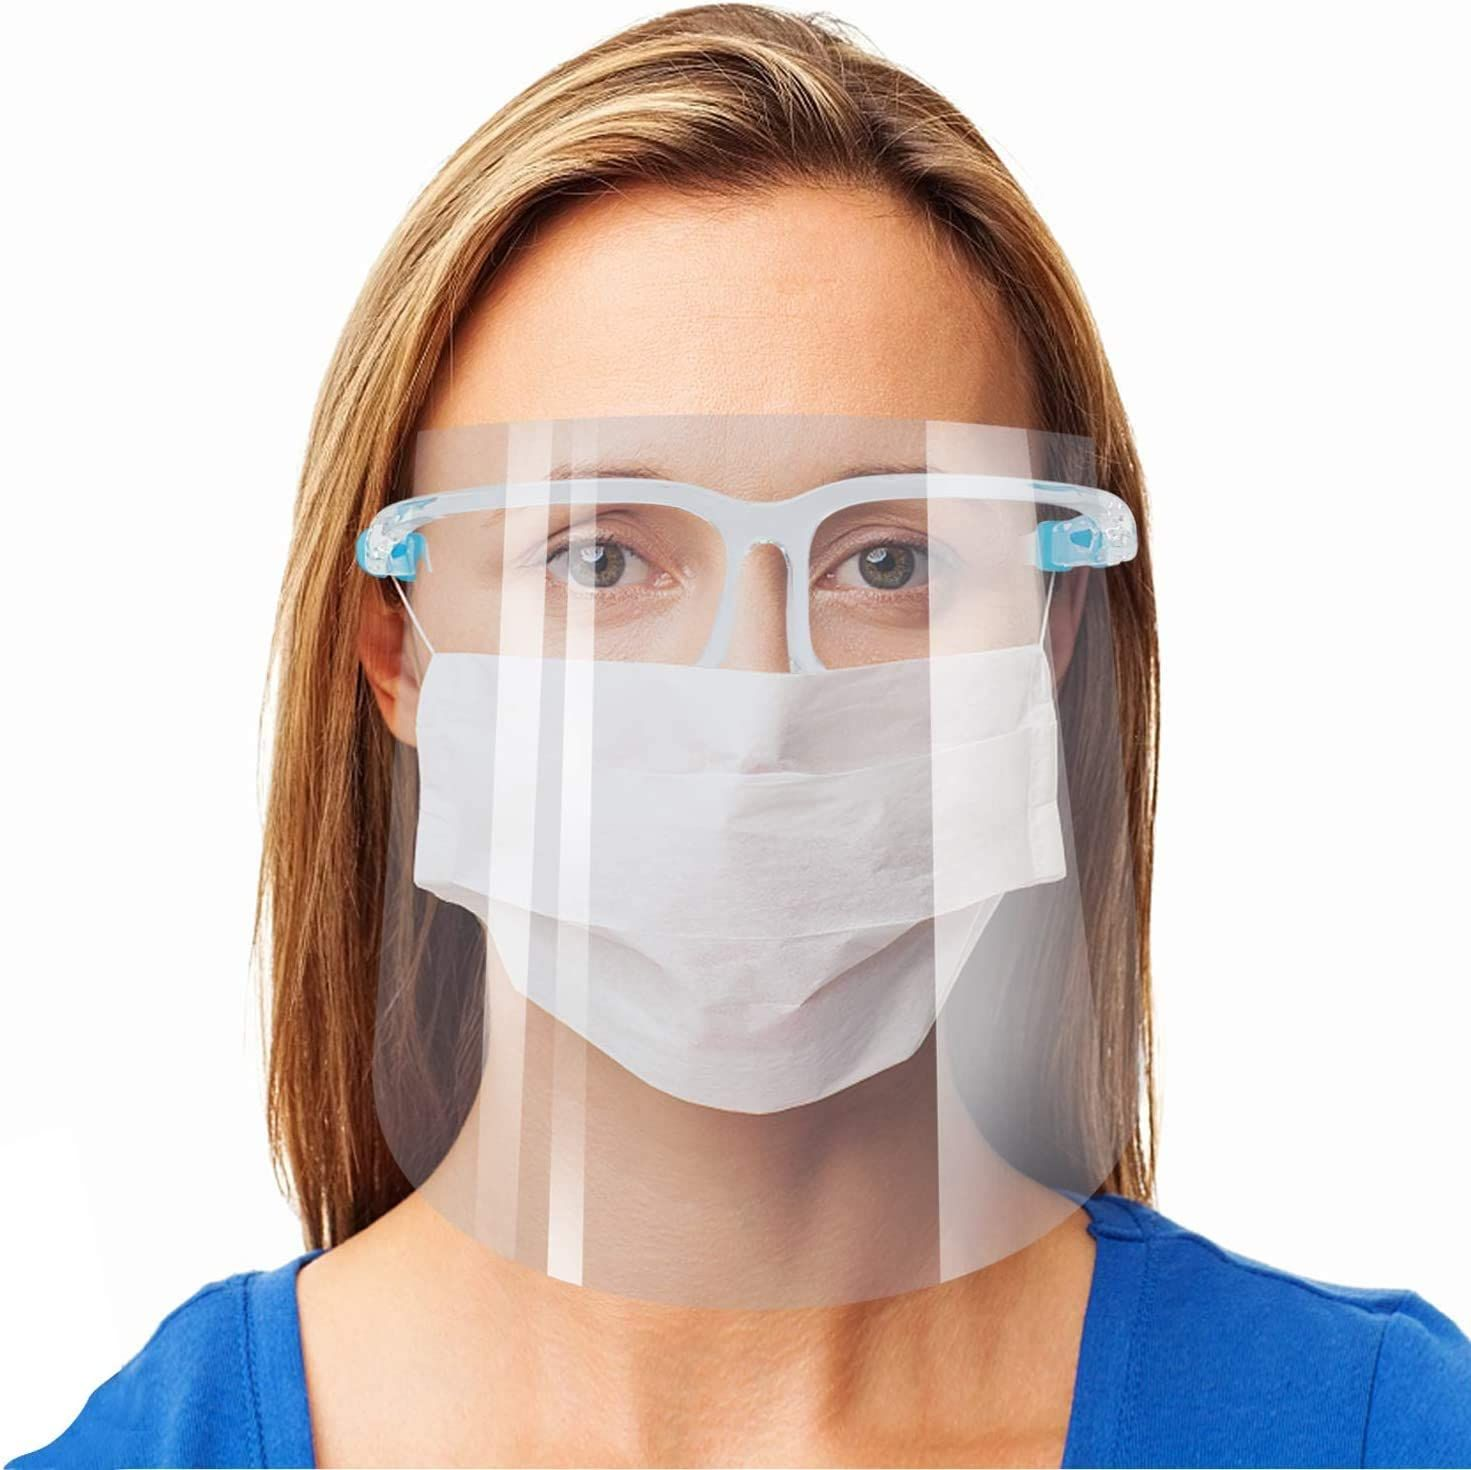 safety glasses with face mask